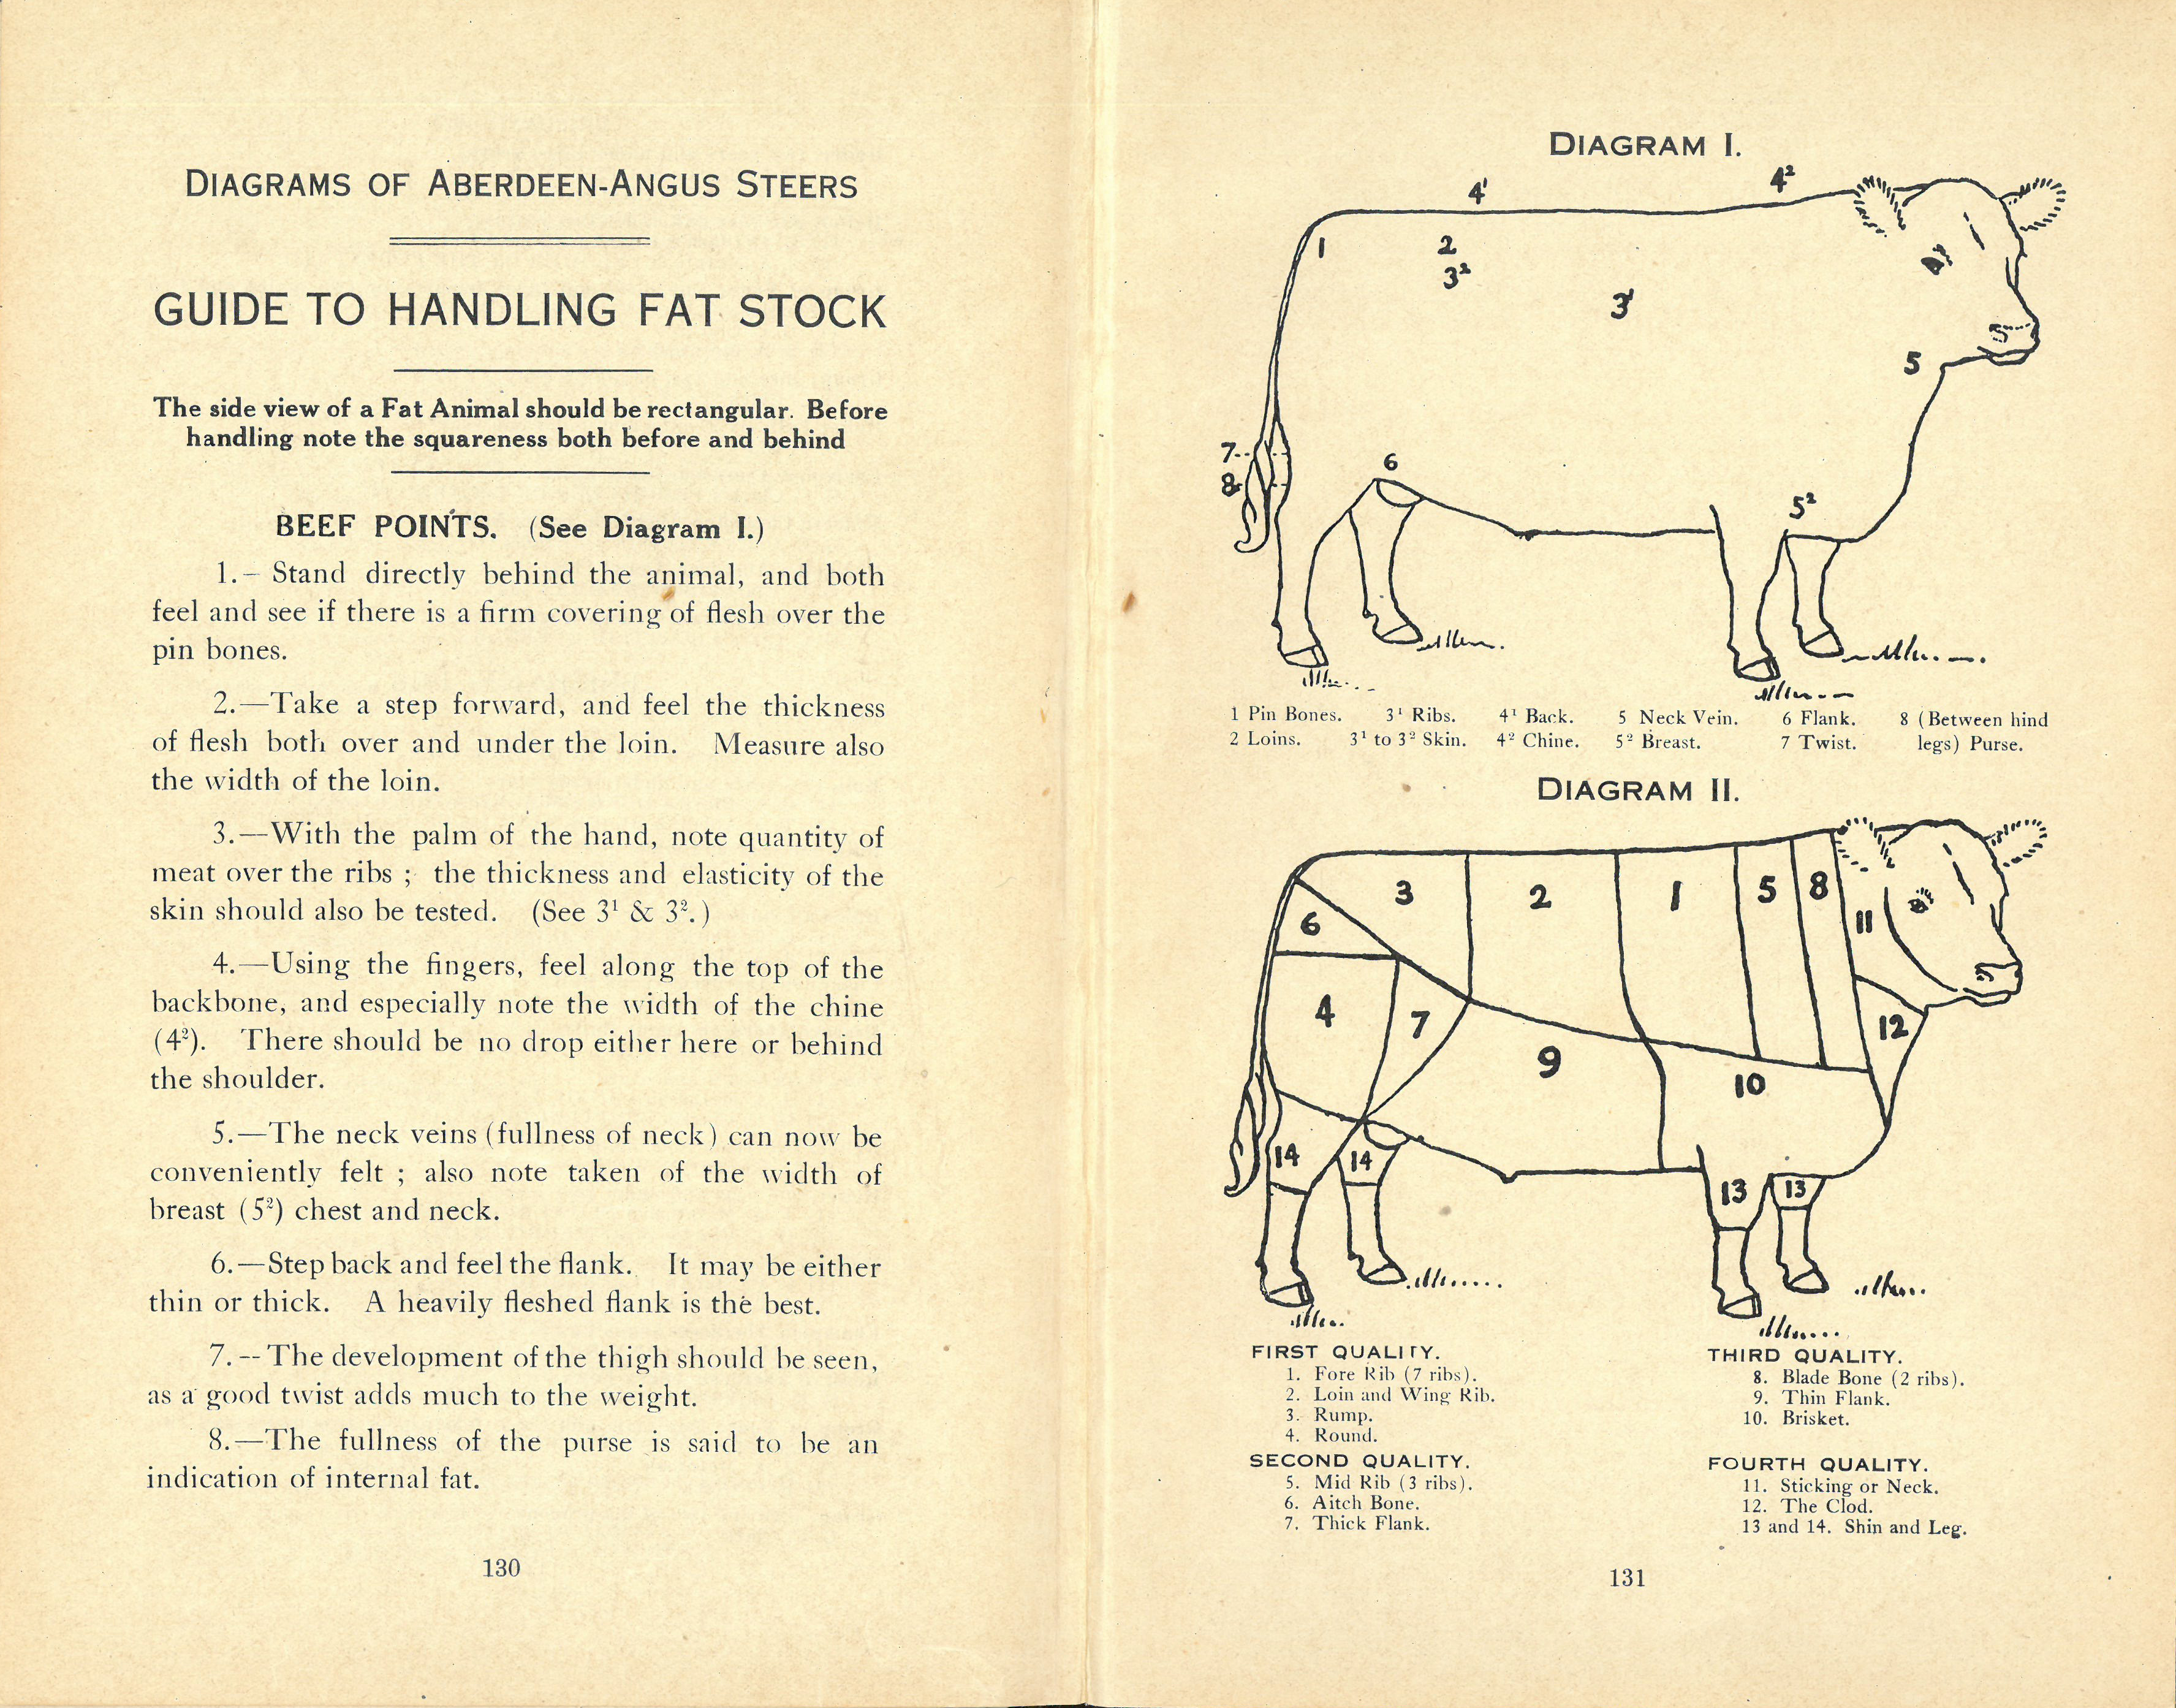 Guide to Handling Fat Stock